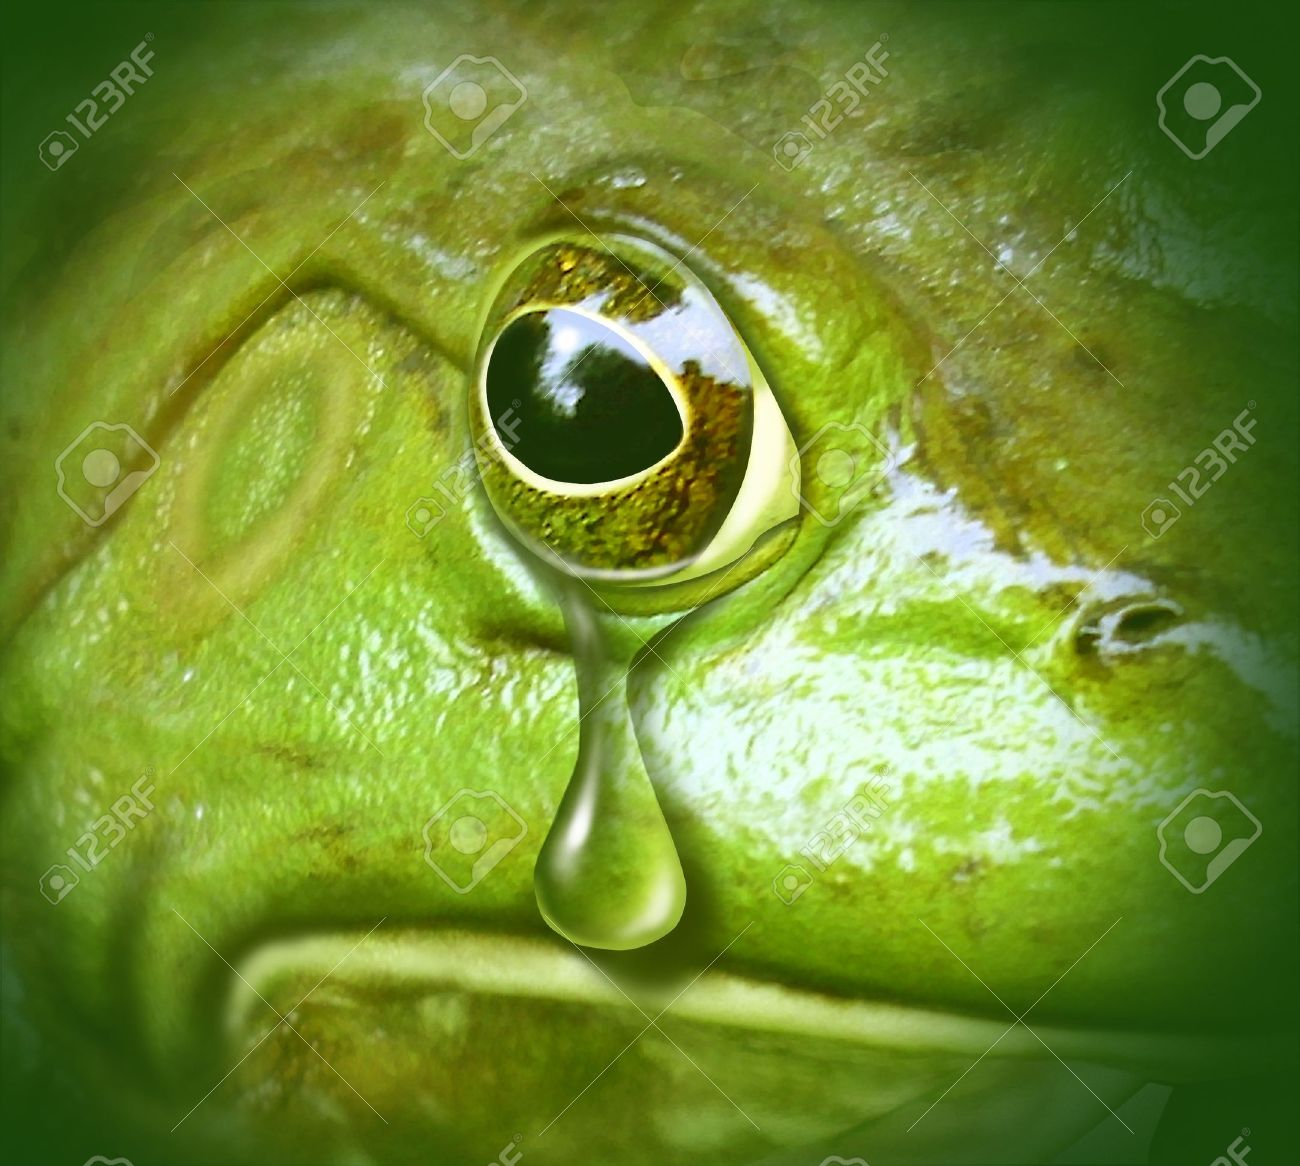 polluted environment green frog crying tears pollution disaster symbol Stock Photo - 10976385